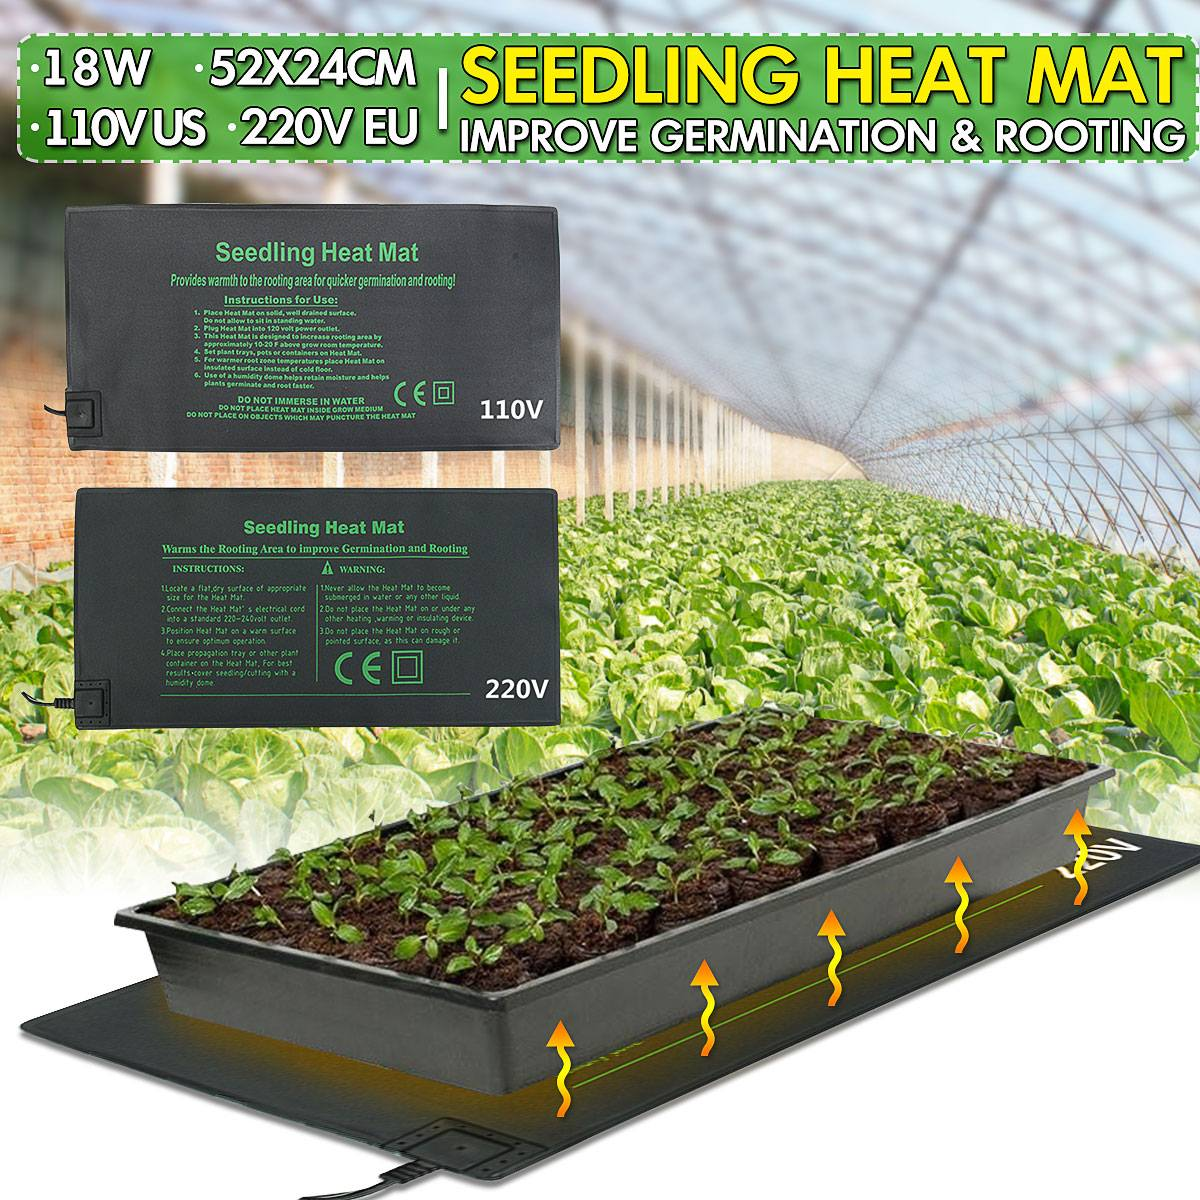 Seedling Heat Mat Plant Seed Germination Propagation Clone Starter Warm Pad Mat Vegetable Flowers Garden Tool Supplies 24x52cm